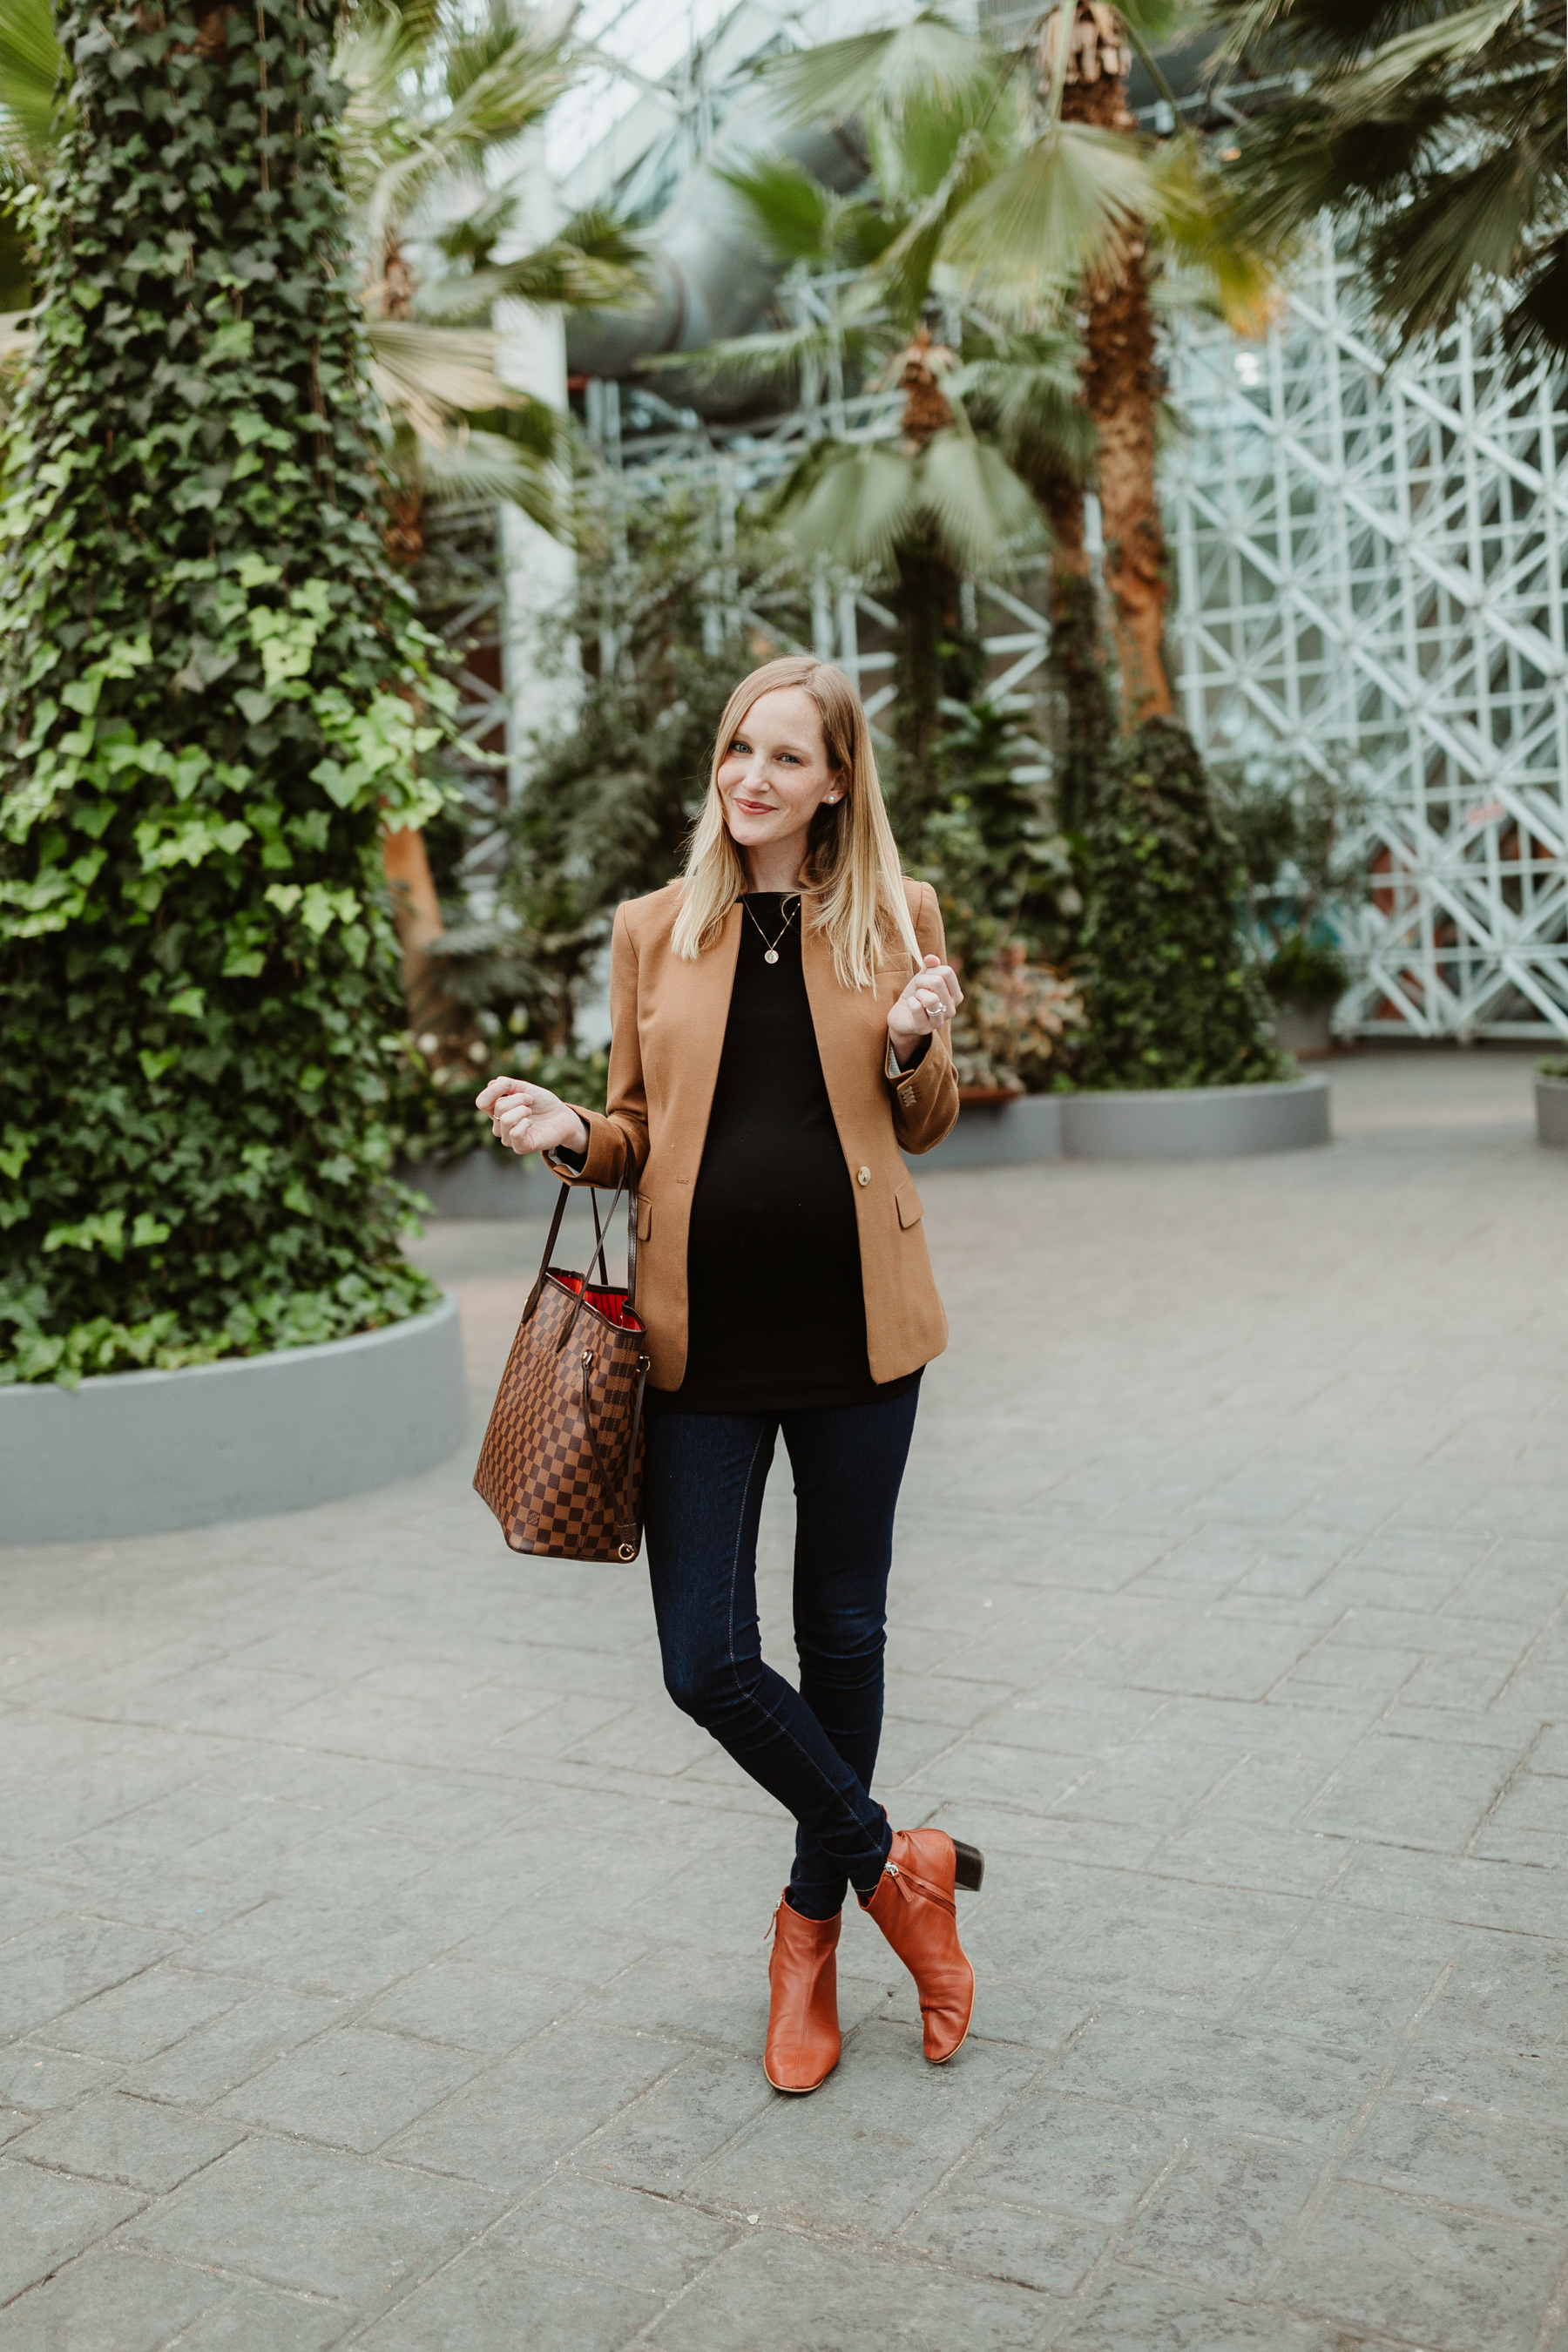 """Kelly's Outfit: Everlane Day Boot c/o / Gold Initial Necklace /J.Crew Regent Blazer /Softest """"Modern Boatneck"""" Tee by Gap / Louis Vuitton MM Neverfull Tote/ Old Navy Rockstar Jeans"""